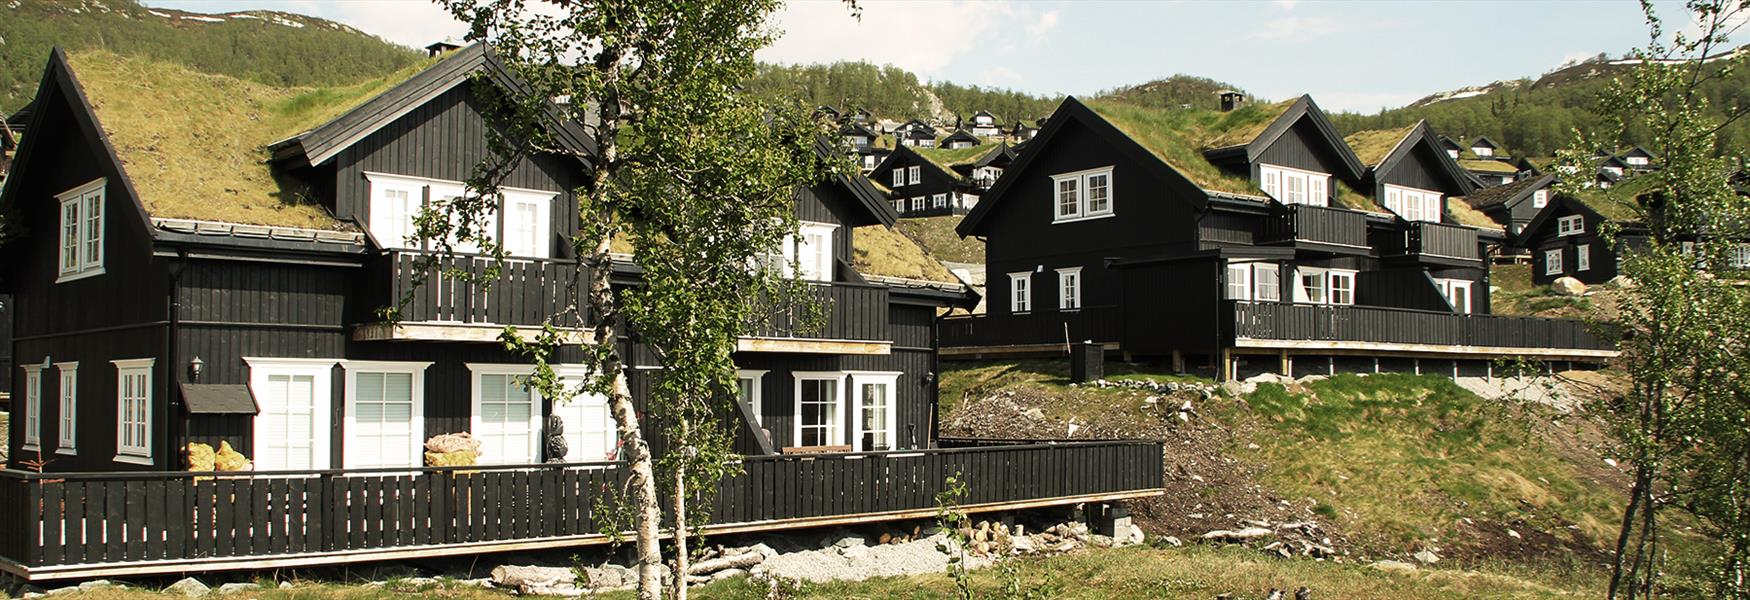 Cottages at Rauland in Telemark